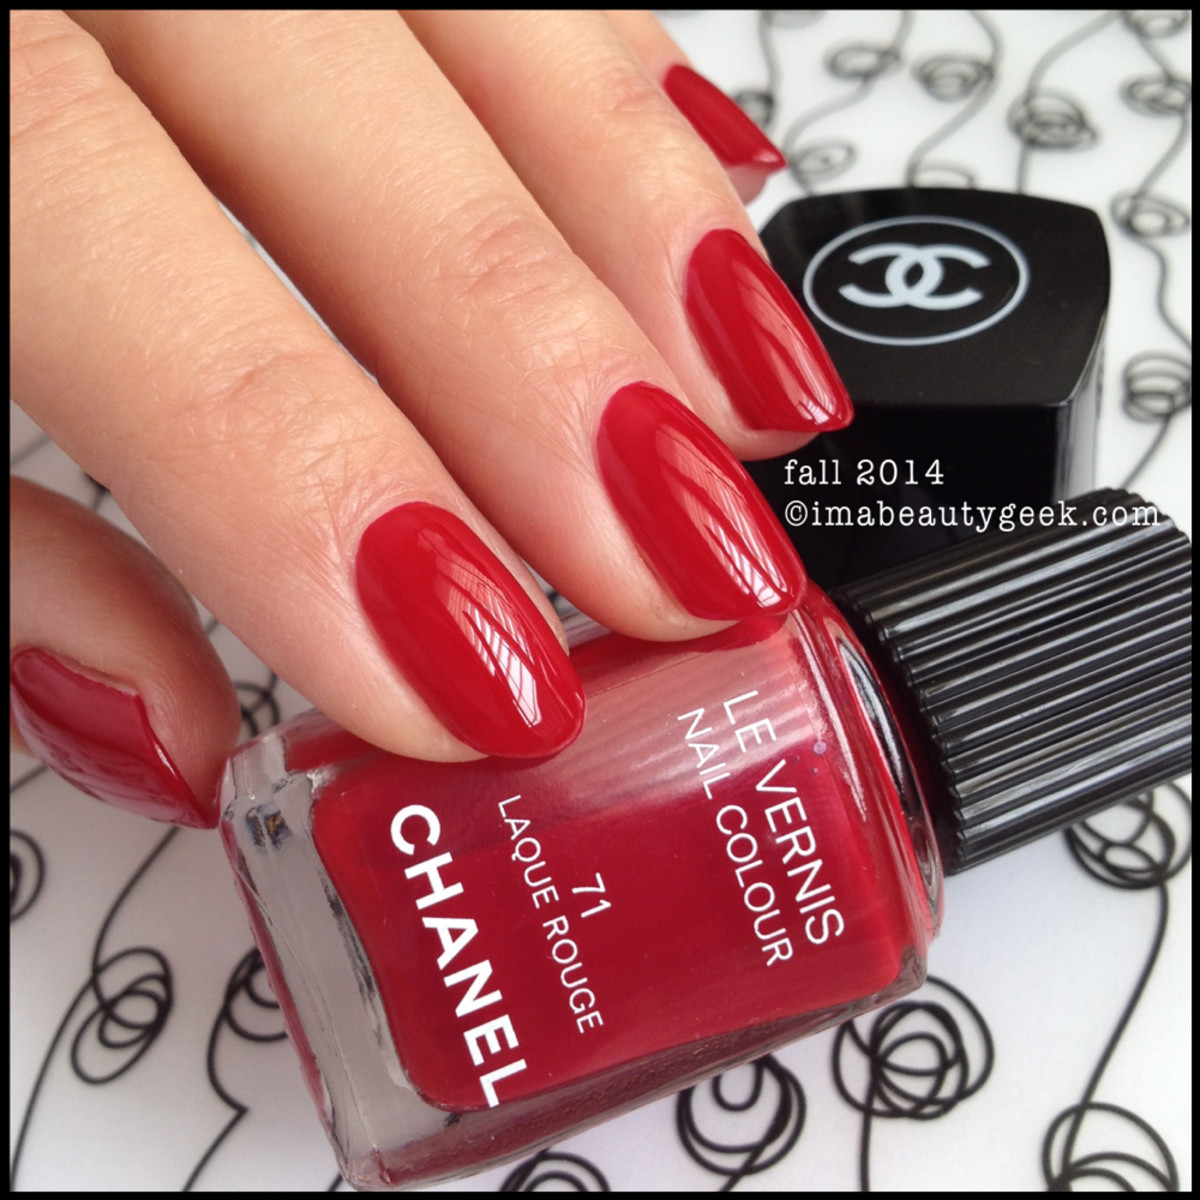 Chanel les rouges culte Laque Rouge 71 Fall 2014 Beautygeeks